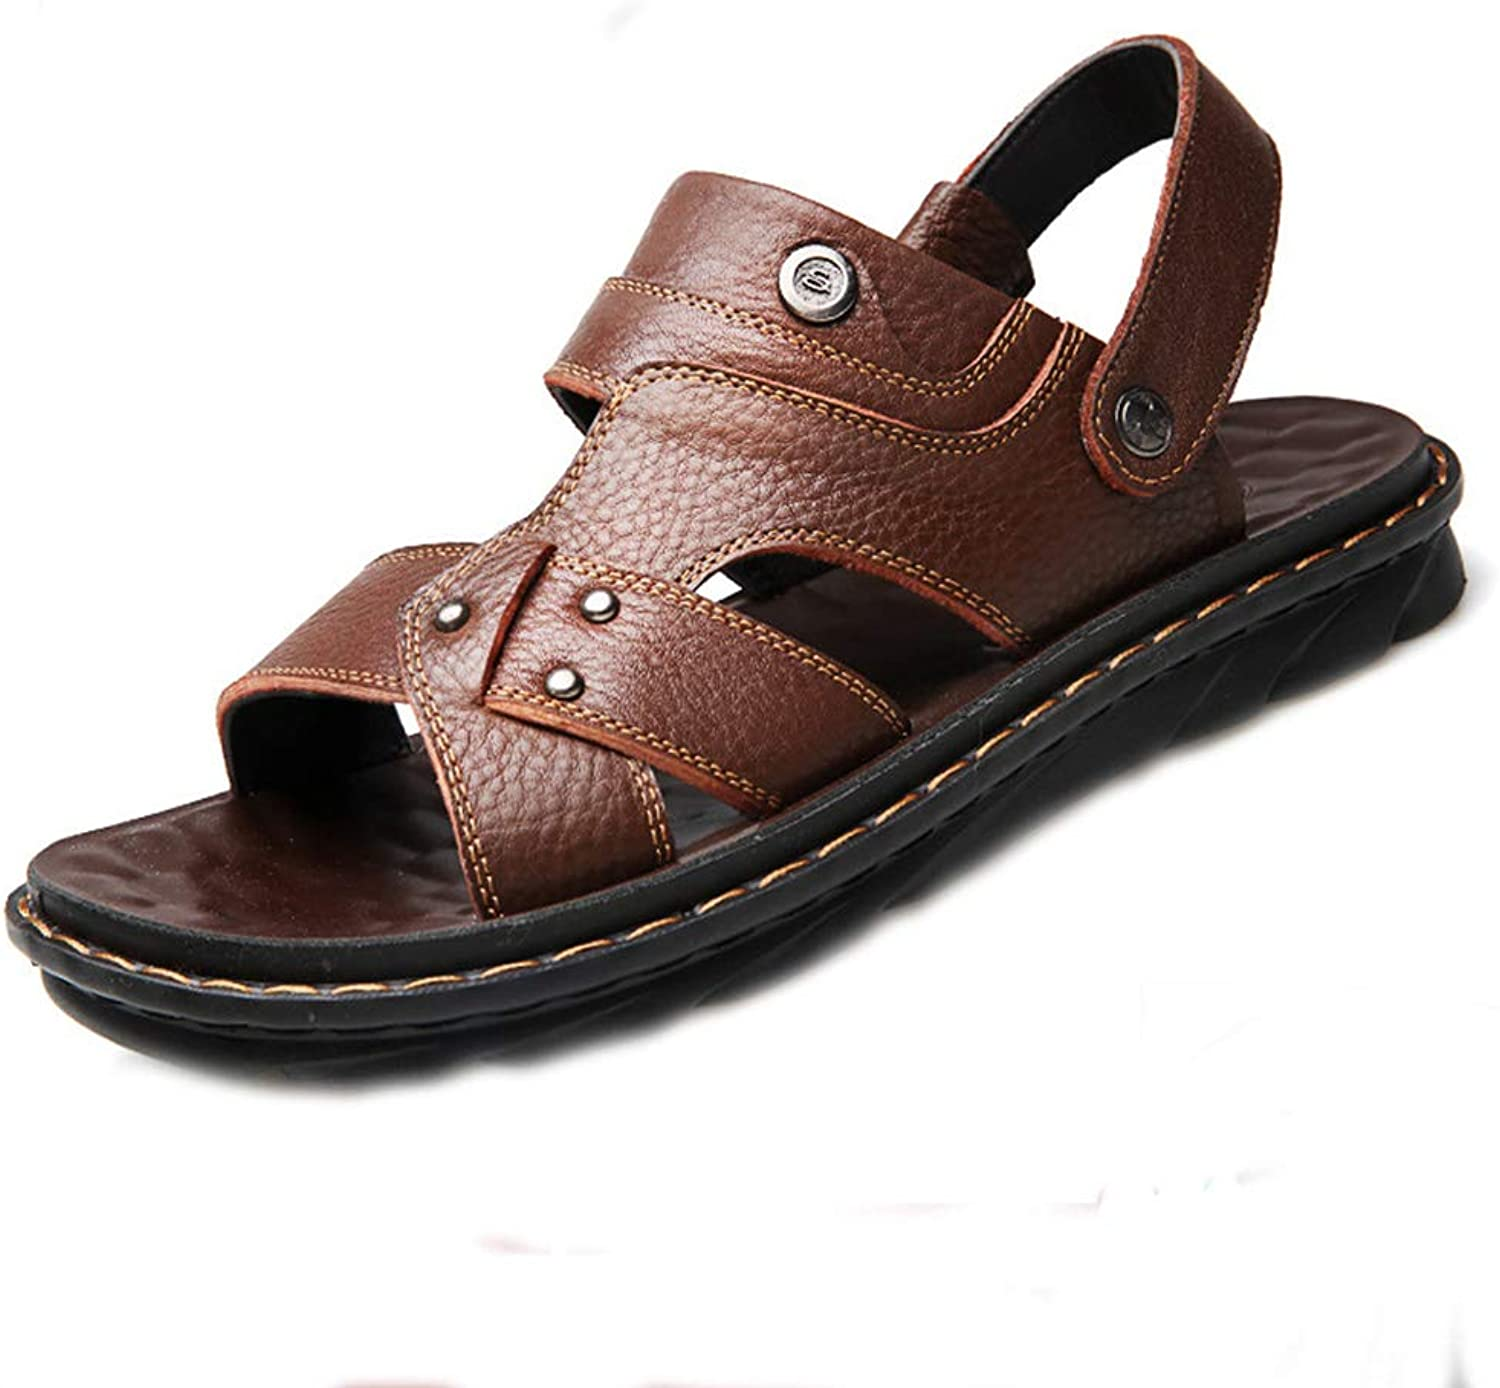 DYFAR 6 12 11 9 8.5 Large size Sandals Sports Outdoor Cork Sandals Comfort Open Toe Men's Leather Fisherman Breathable Summer Casual Adjustable Strap shoes Walking Beach Travel